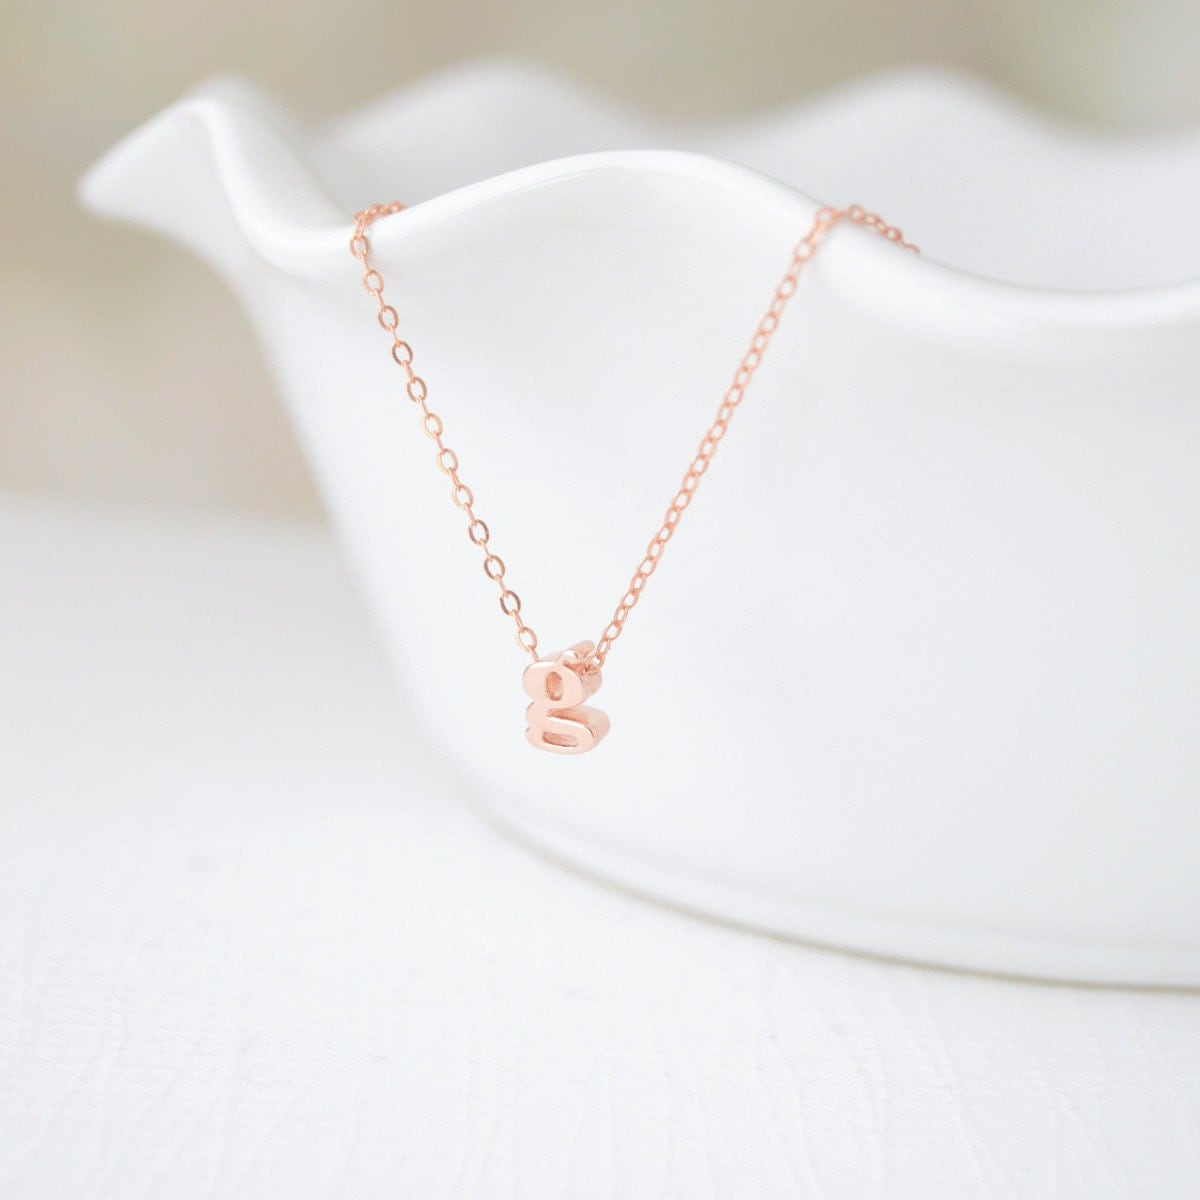 Lowercase rose gold initial necklace 1001 by oliveyewjewels for Lowercase letter necklace